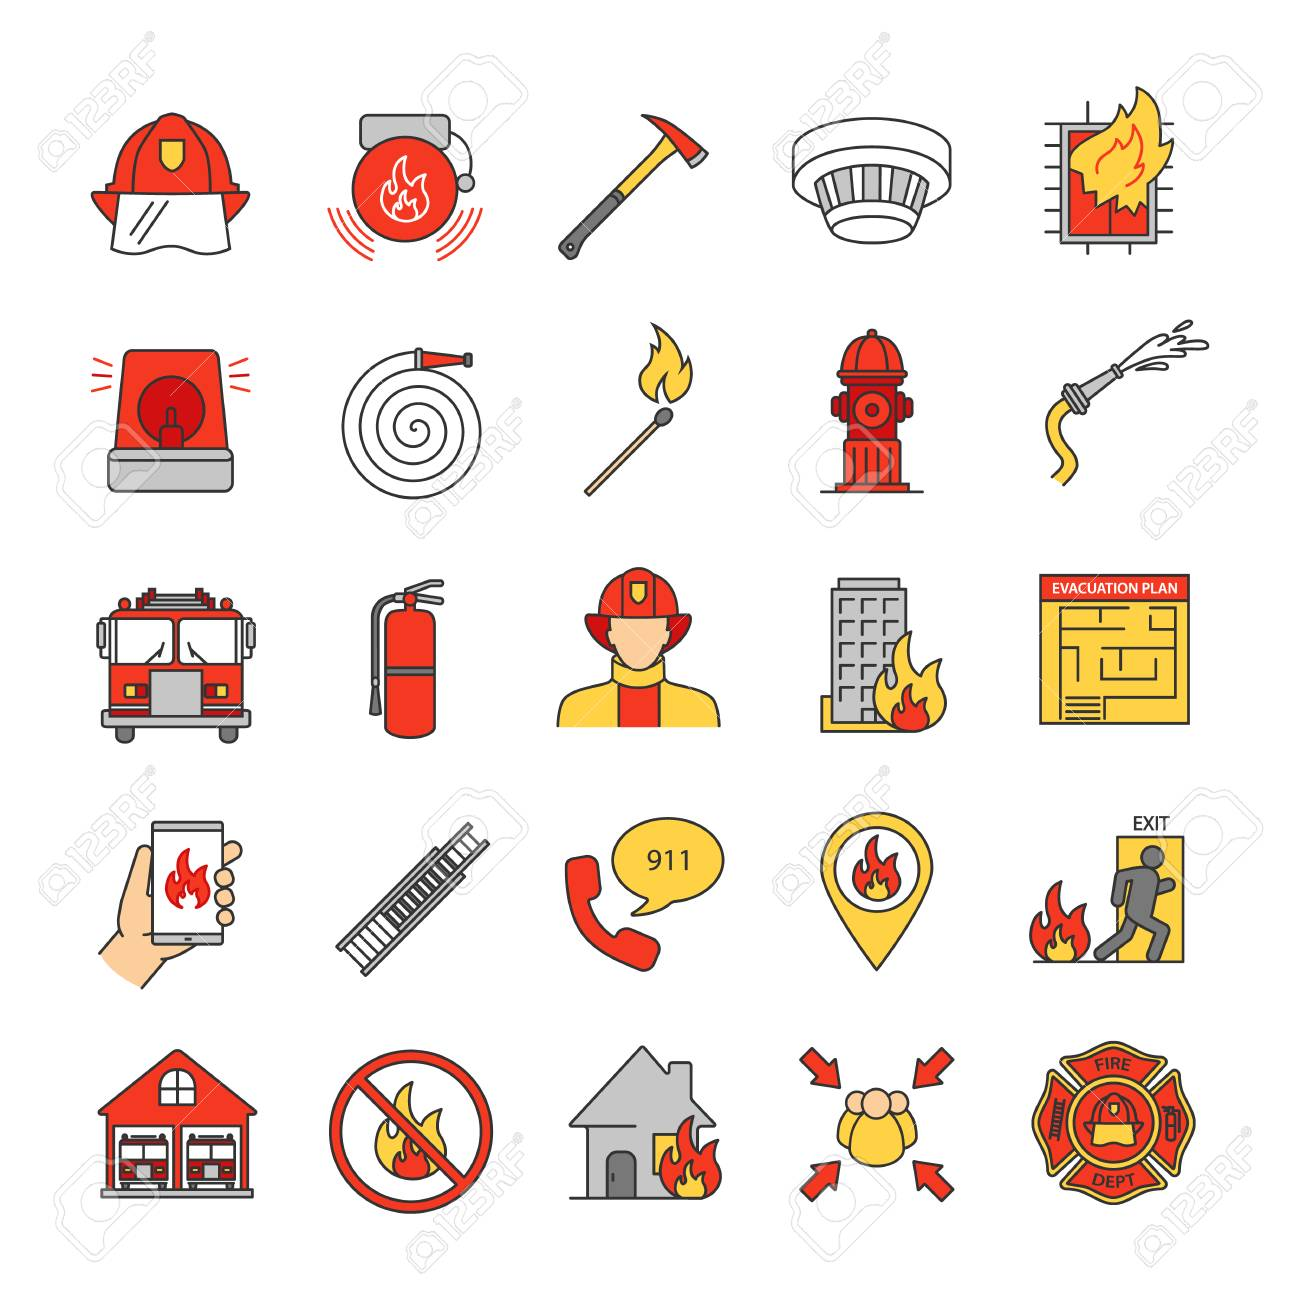 Firefighter Vector Firefighting Equipment Firehose Hydrant And.. Royalty  Free Cliparts, Vectors, And Stock Illustration. Image 109391682.